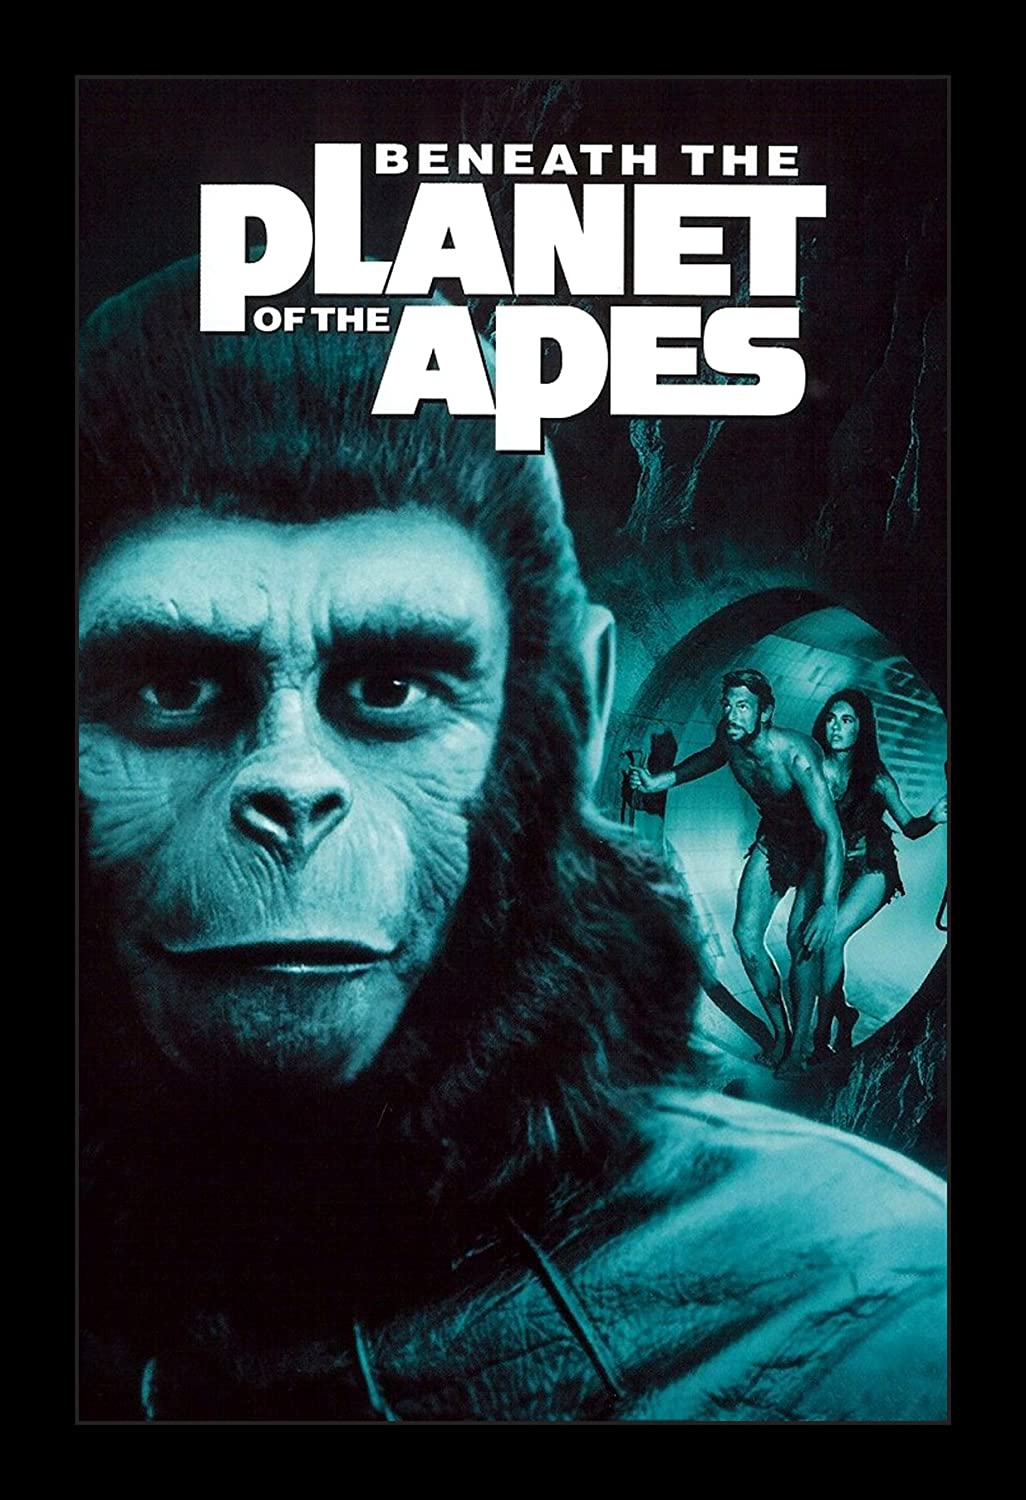 Beneath The Planet Of The Apes - 11x17 Framed Movie Poster by Wallspace